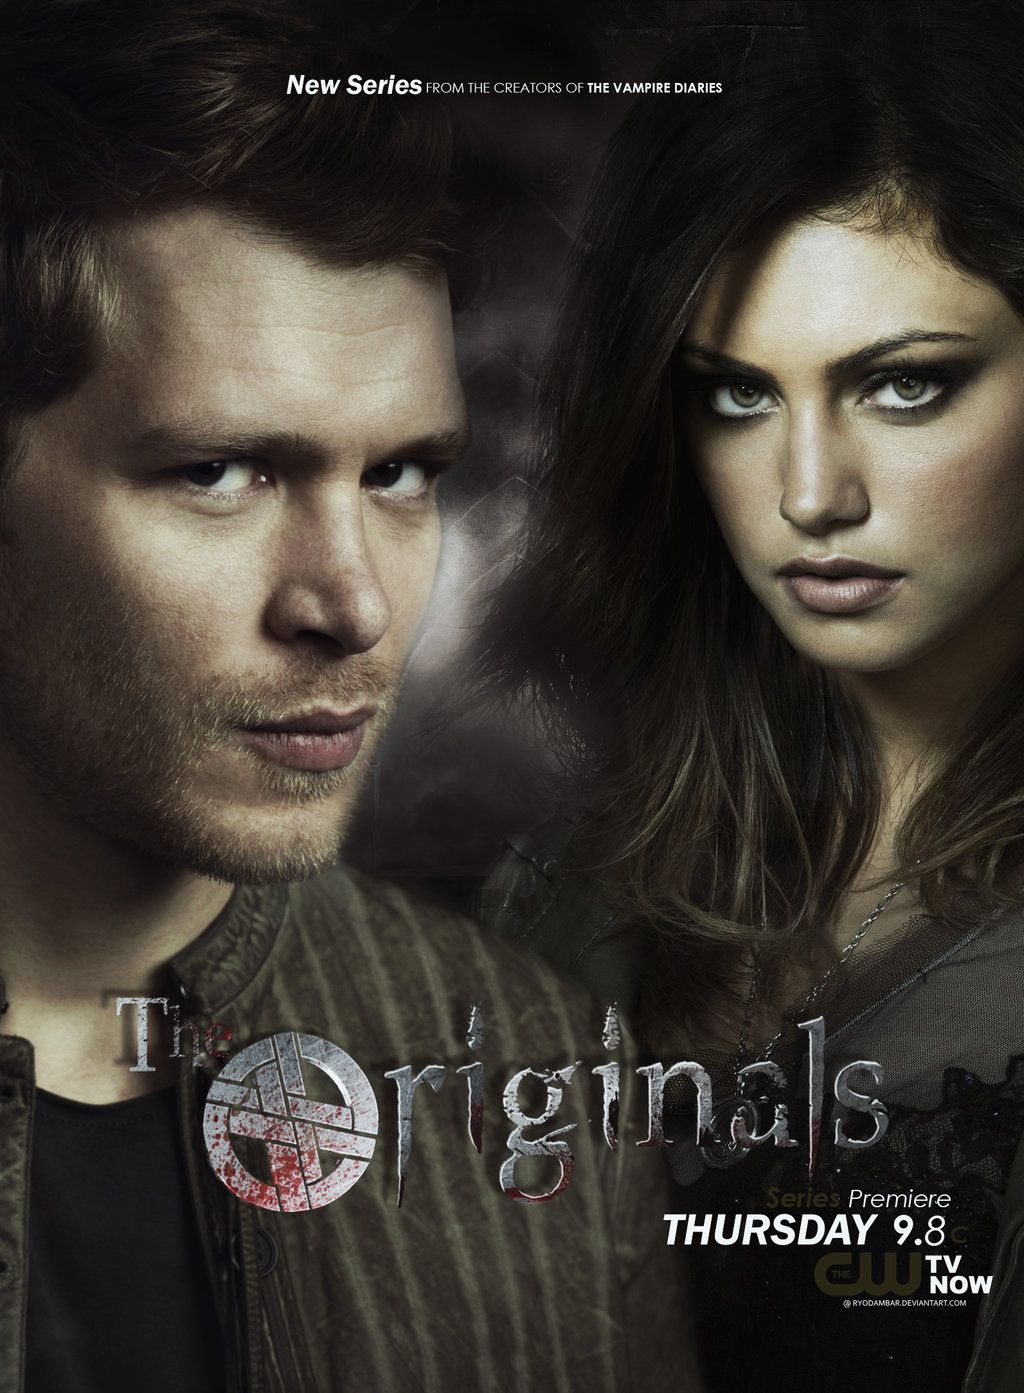 The Originals Hoping This Is As Good As The Vampire Diaries But